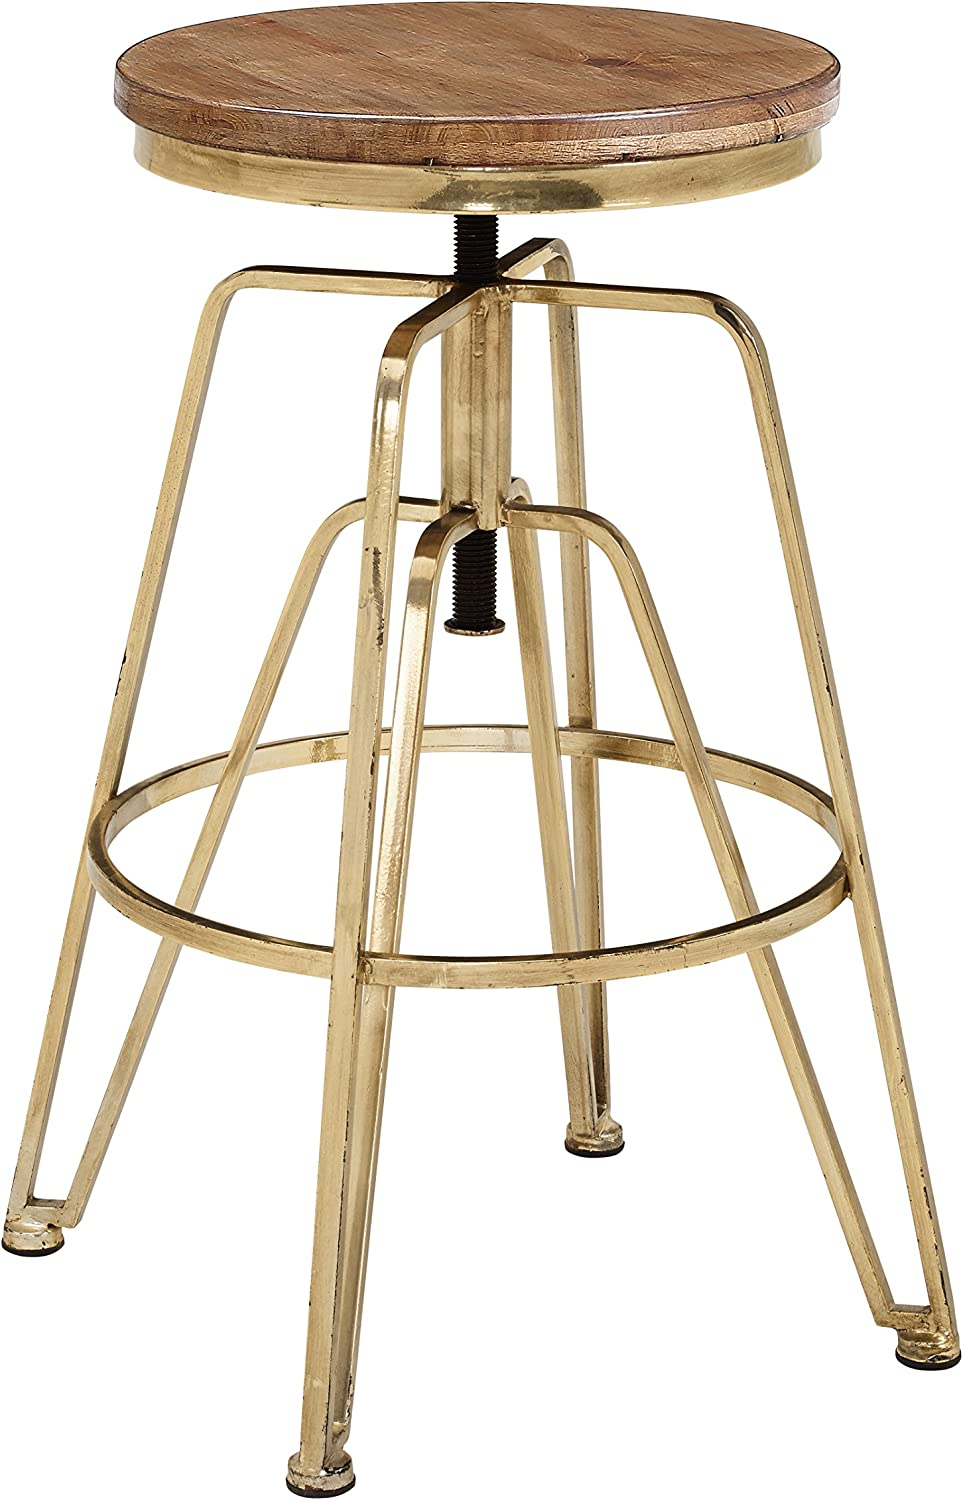 Linon AMMBRASS1AS Wood and Metal Adjustable Stool, Brown/Gold